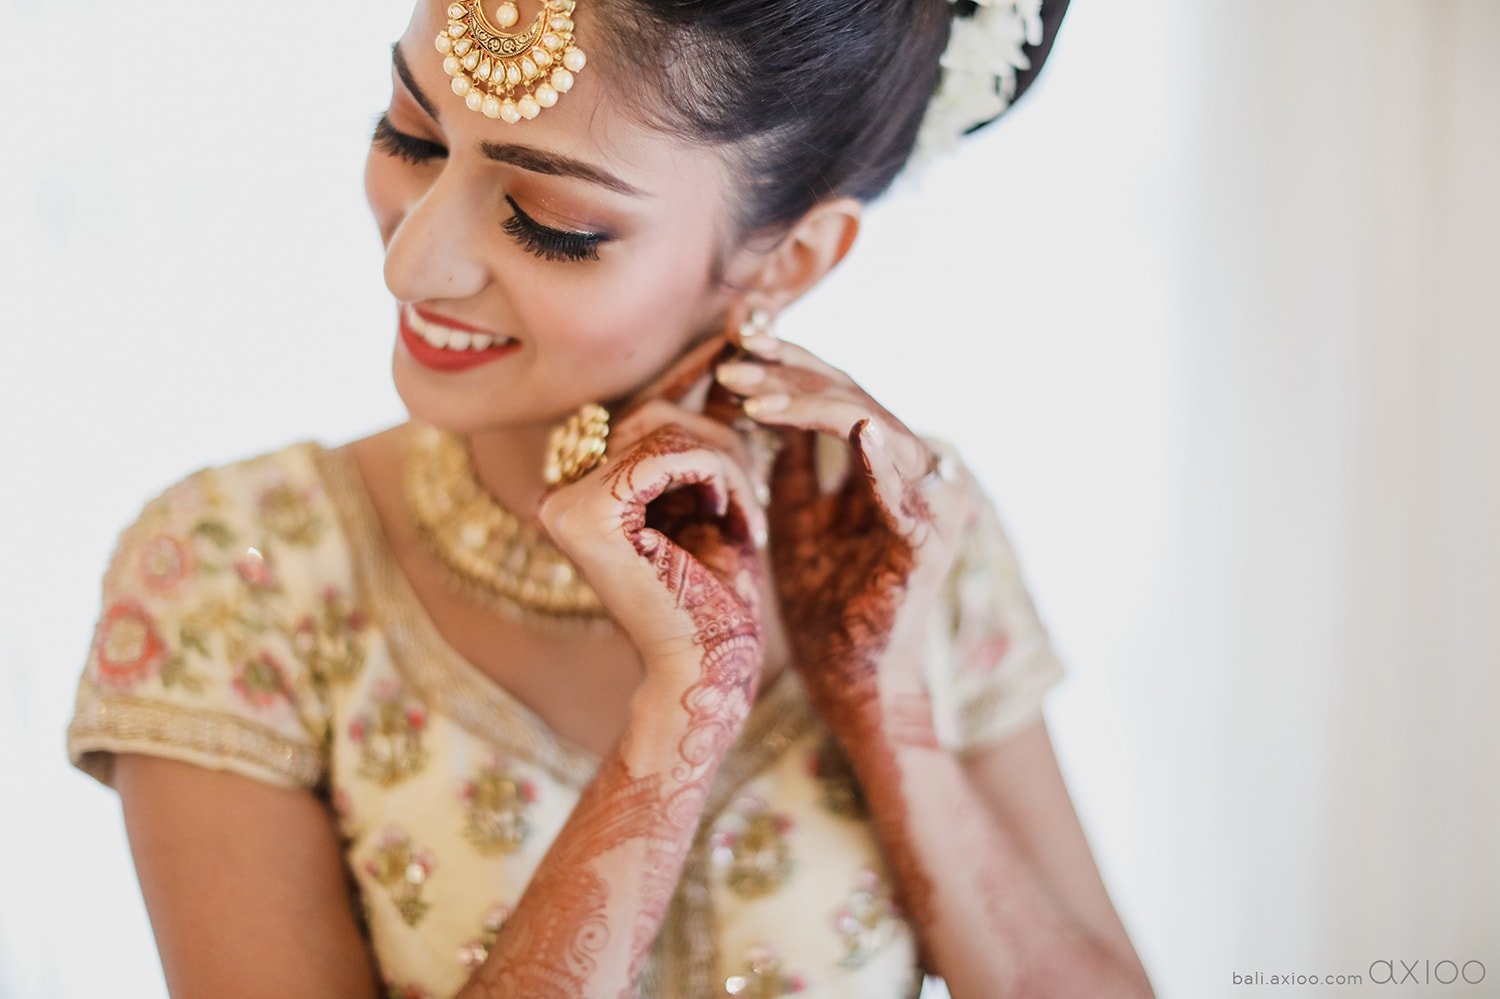 Axioo: Not Your Ordinary Indian Wedding